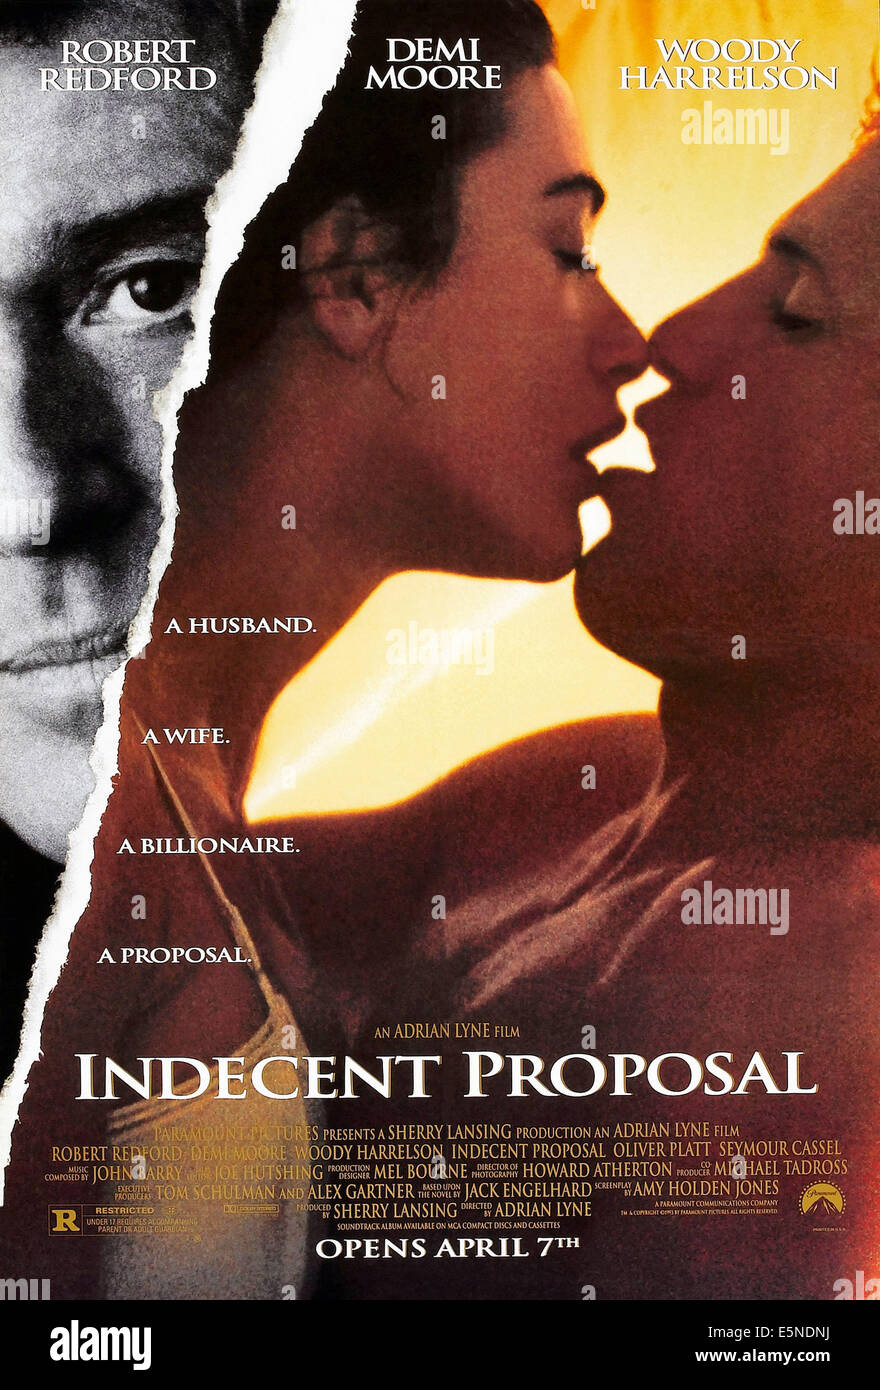 INDECENT PROPOSAL, U.S. advance poster, from left: Robert Redford, Demi Moore, Woody Harrelson, 1993. ©Paramount/courtesy - Stock Image